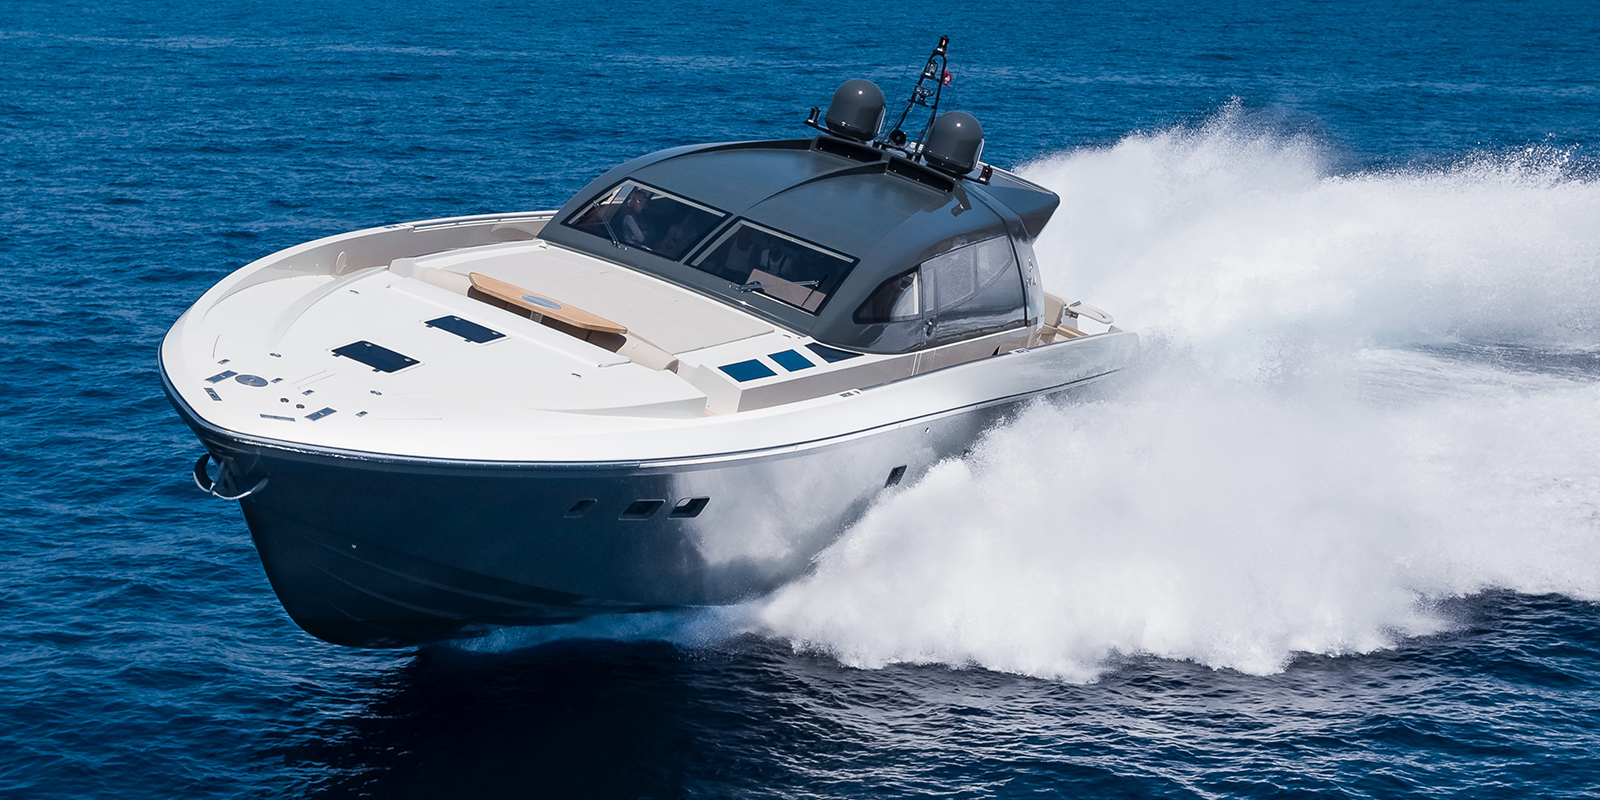 Otam 80 HT attitude - The world of yachts